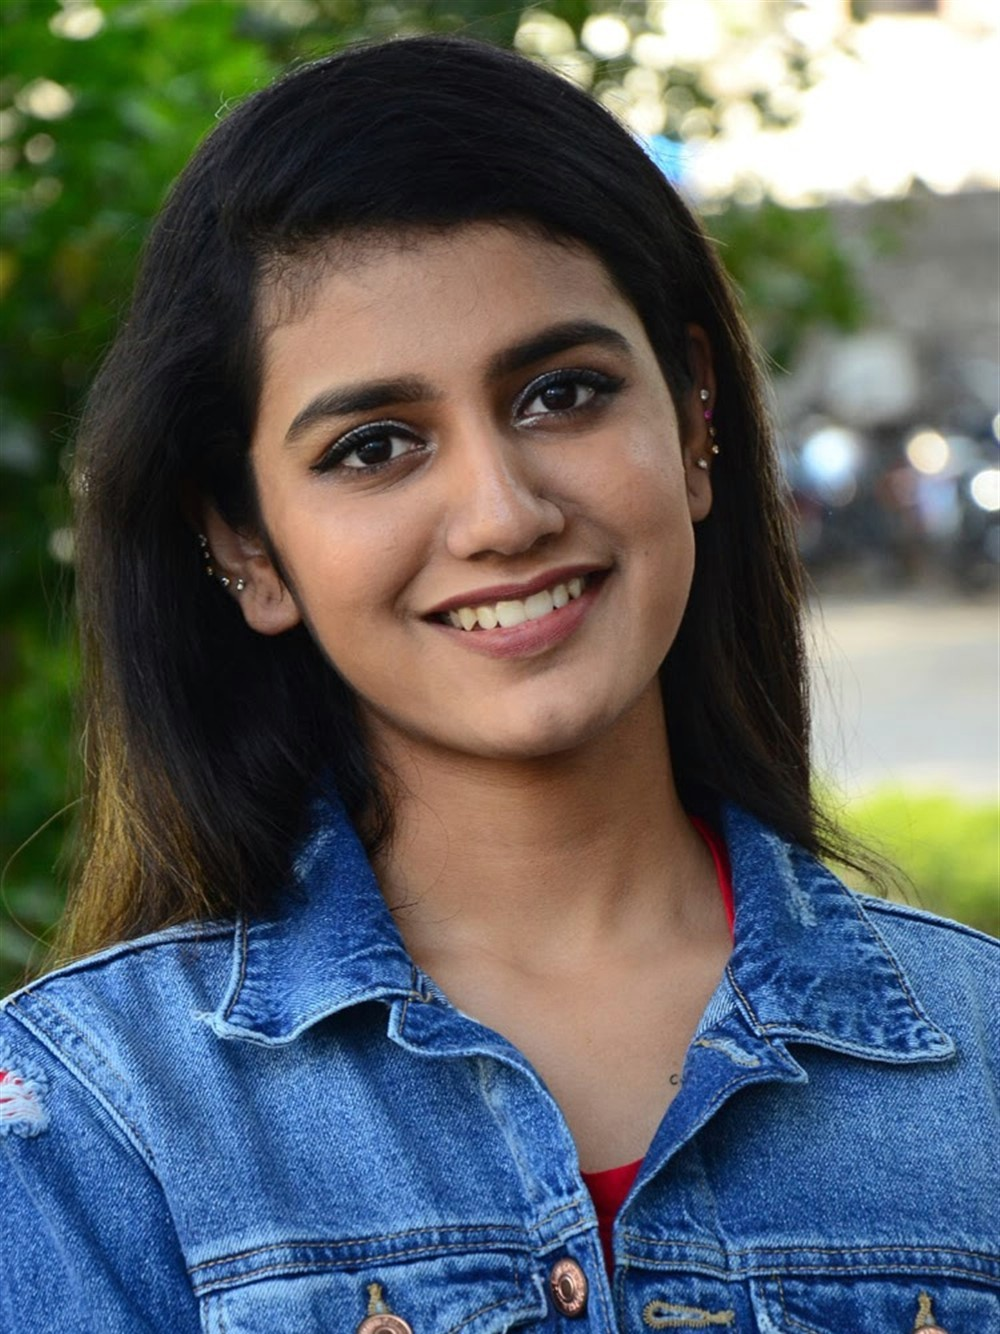 actress-priya-prakash-varrier-latest-cute-images-4